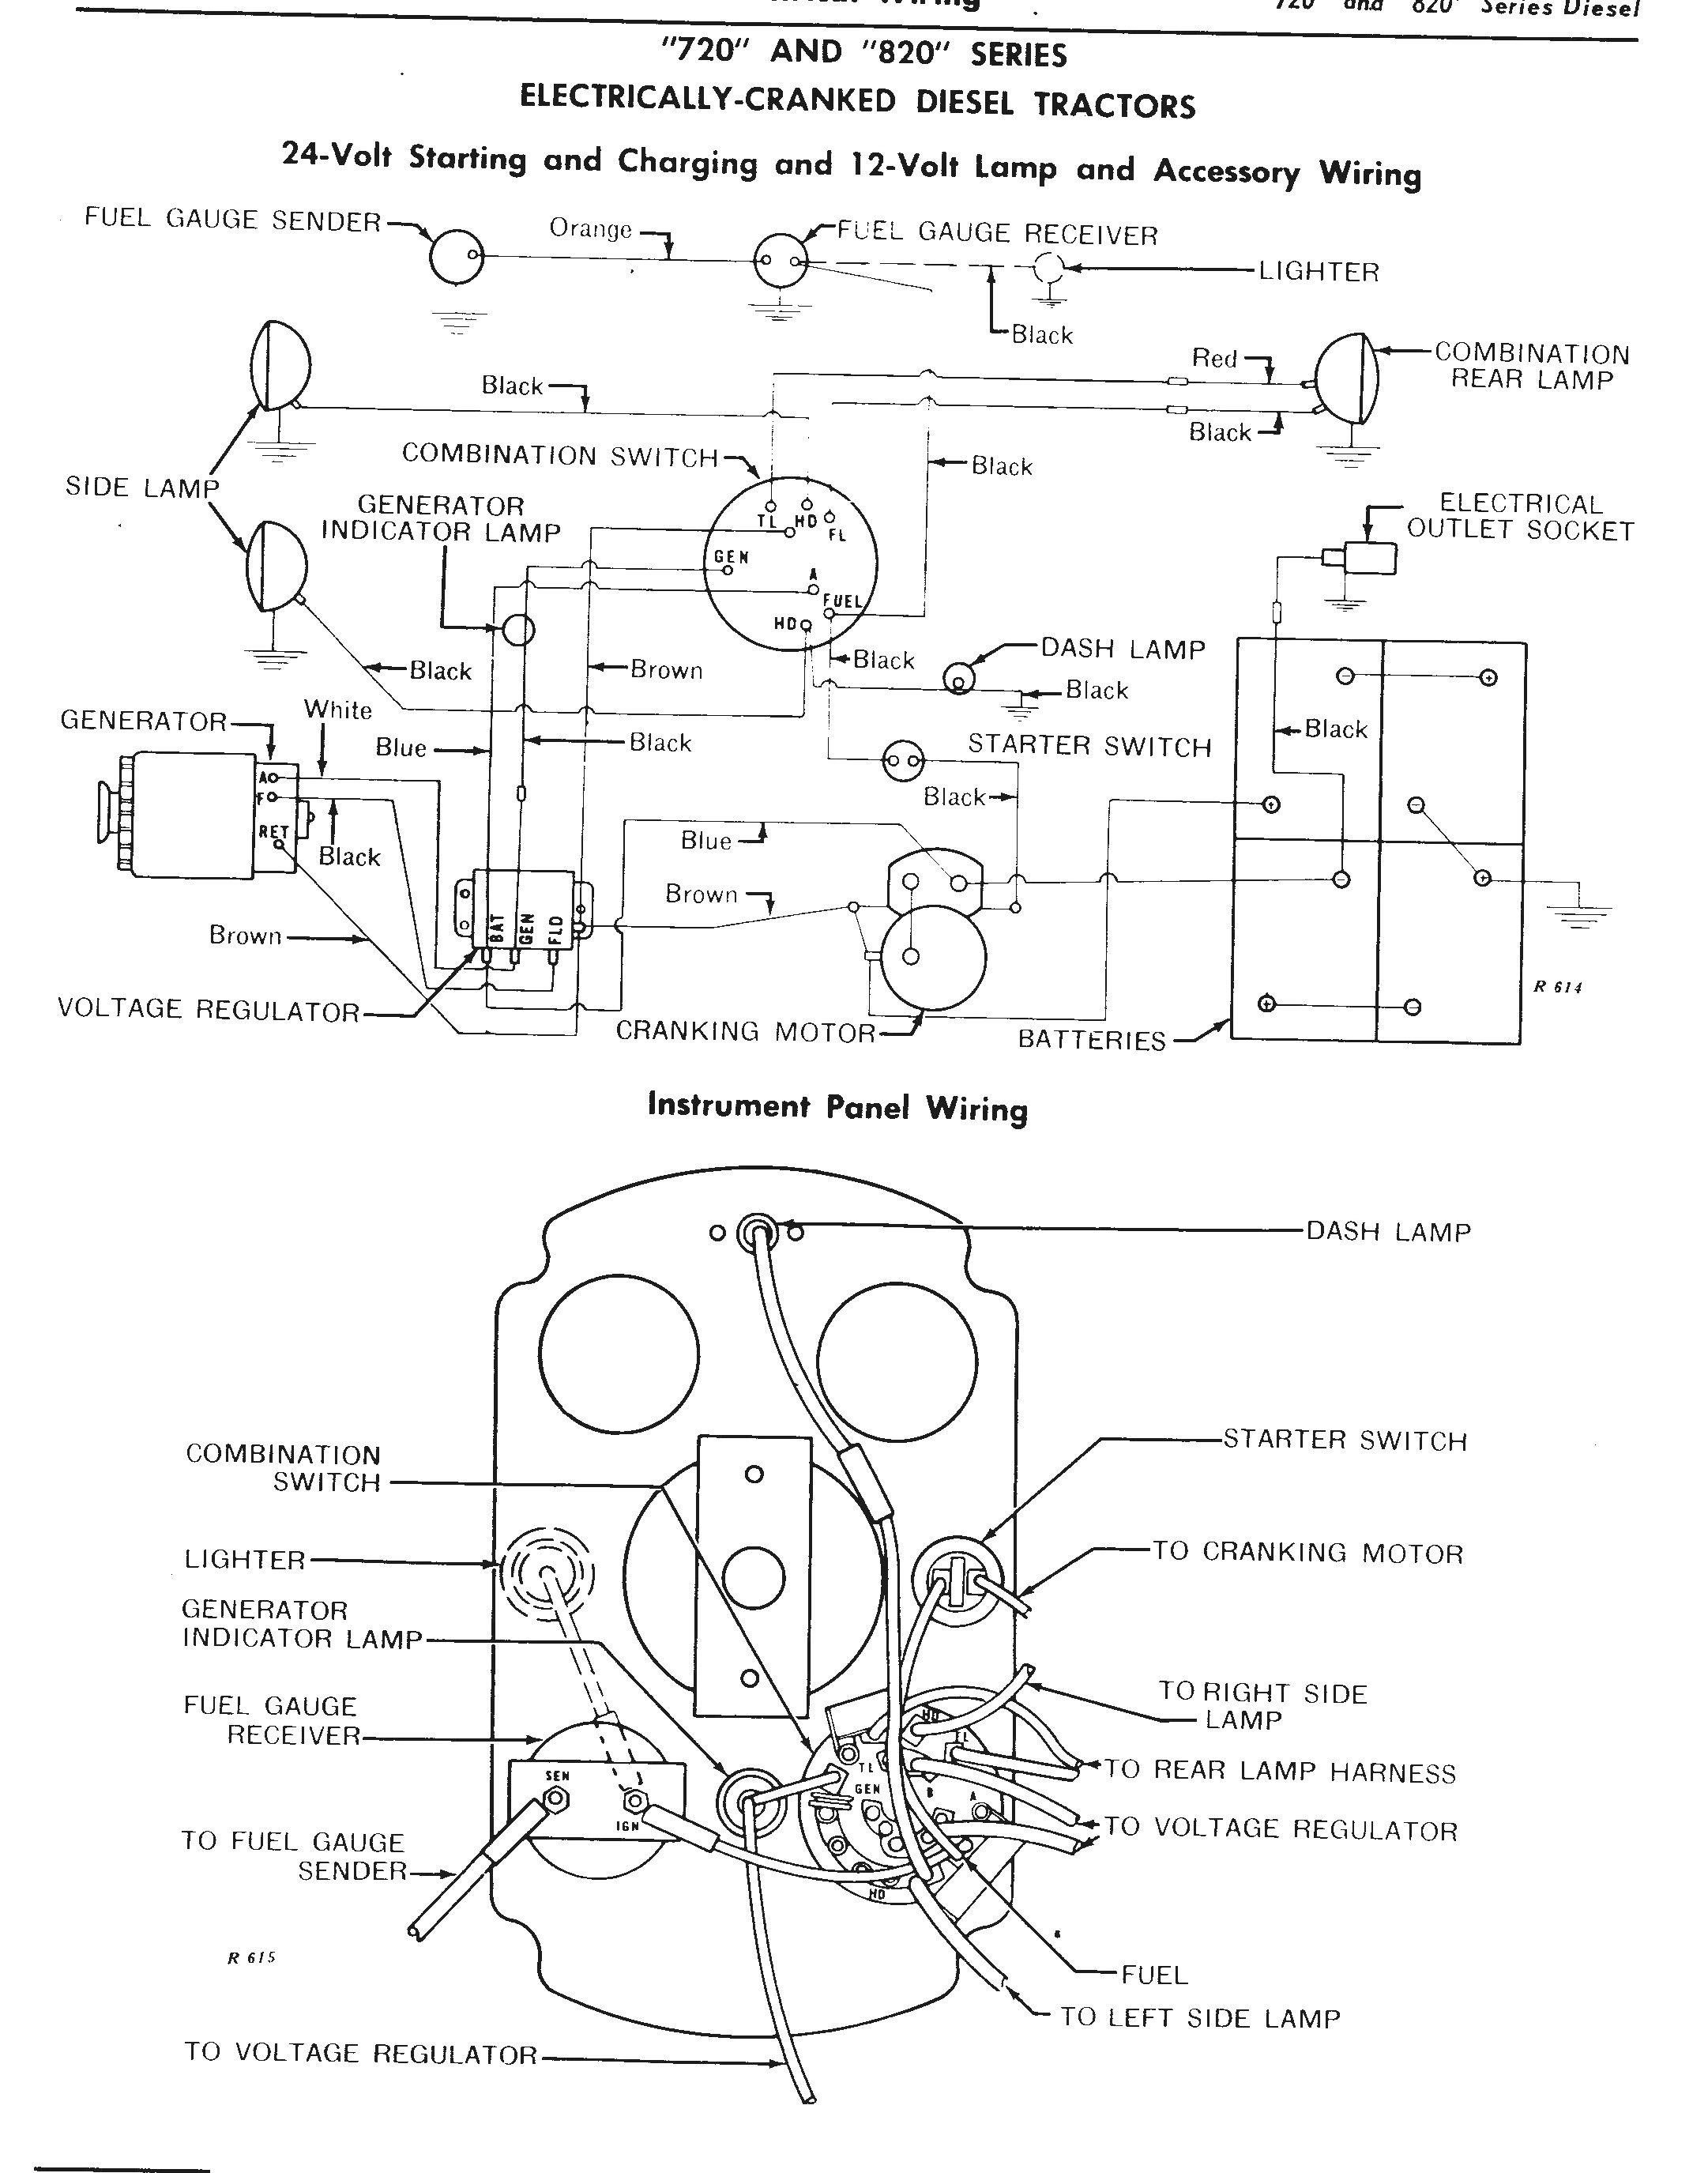 4020 John Deere Silinoid to Stater Wireing 12voalt Photos the John Deere 24 Volt Electrical System Explained Of 4020 John Deere Silinoid to Stater Wireing 12voalt Photos